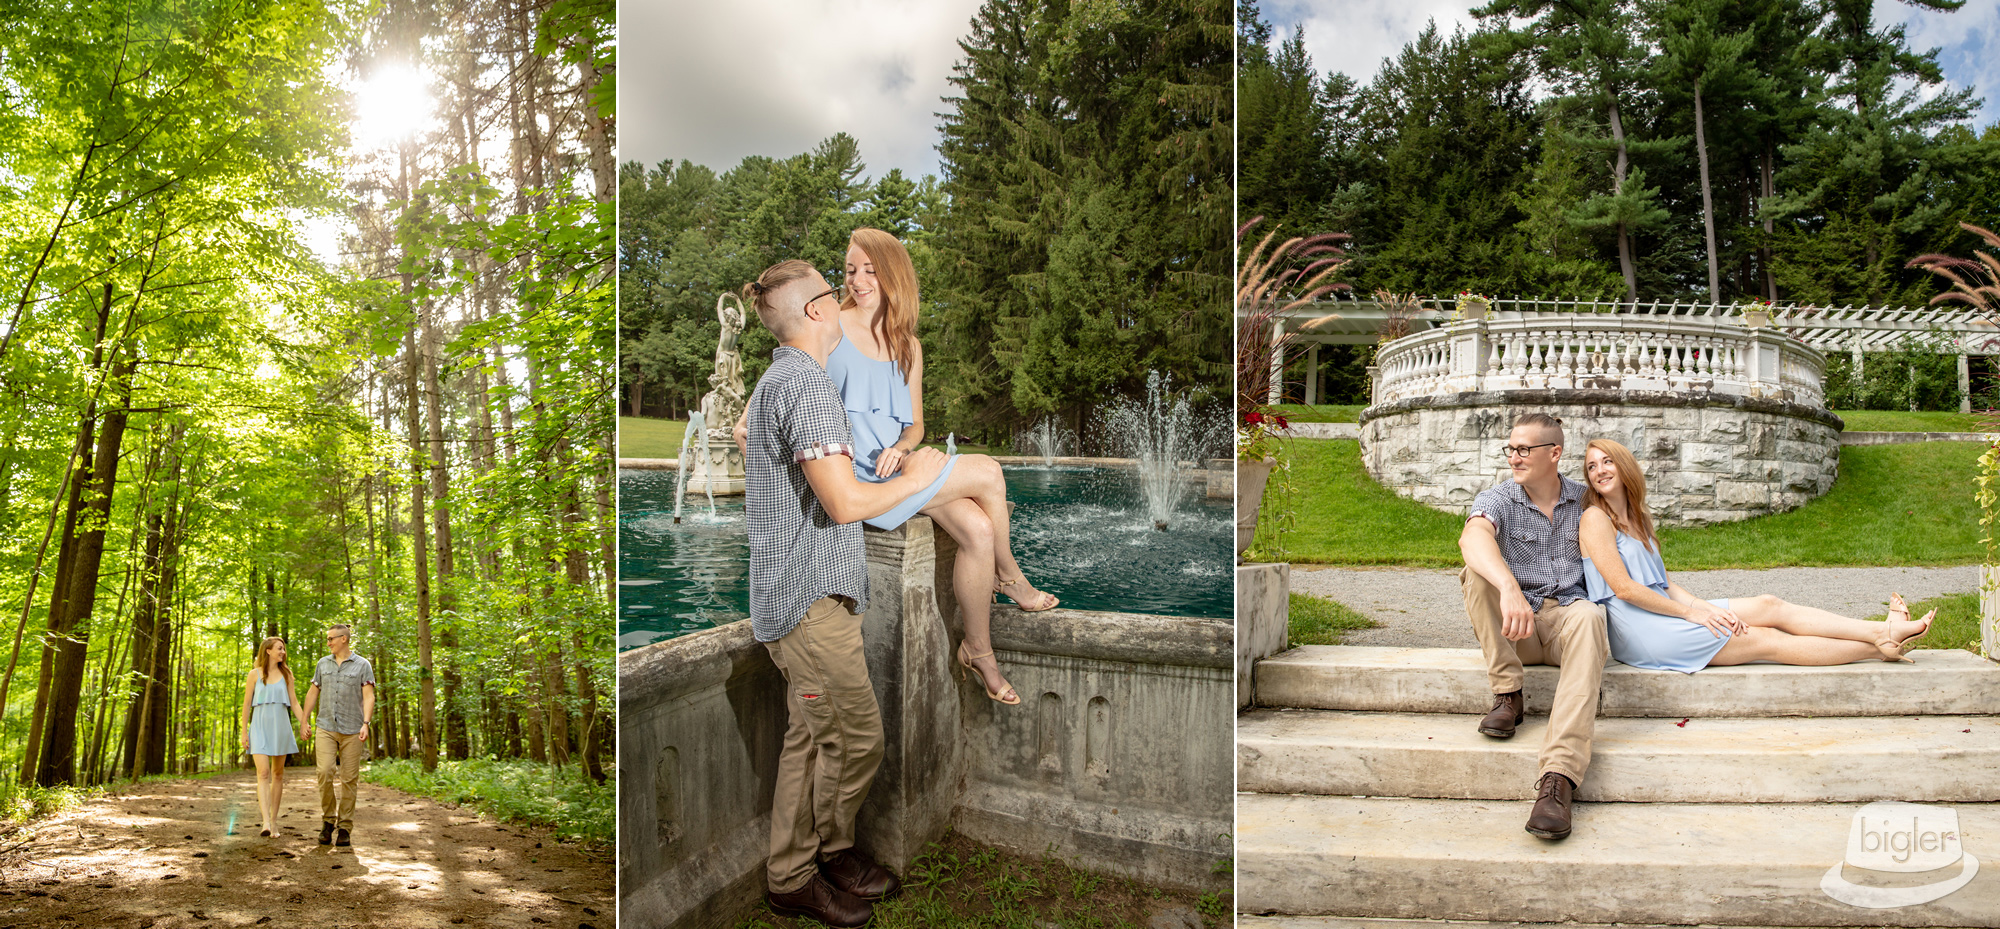 20180904_-_04_-_Carolyn_and_Matt_Yaddo_Gardens_EShoot